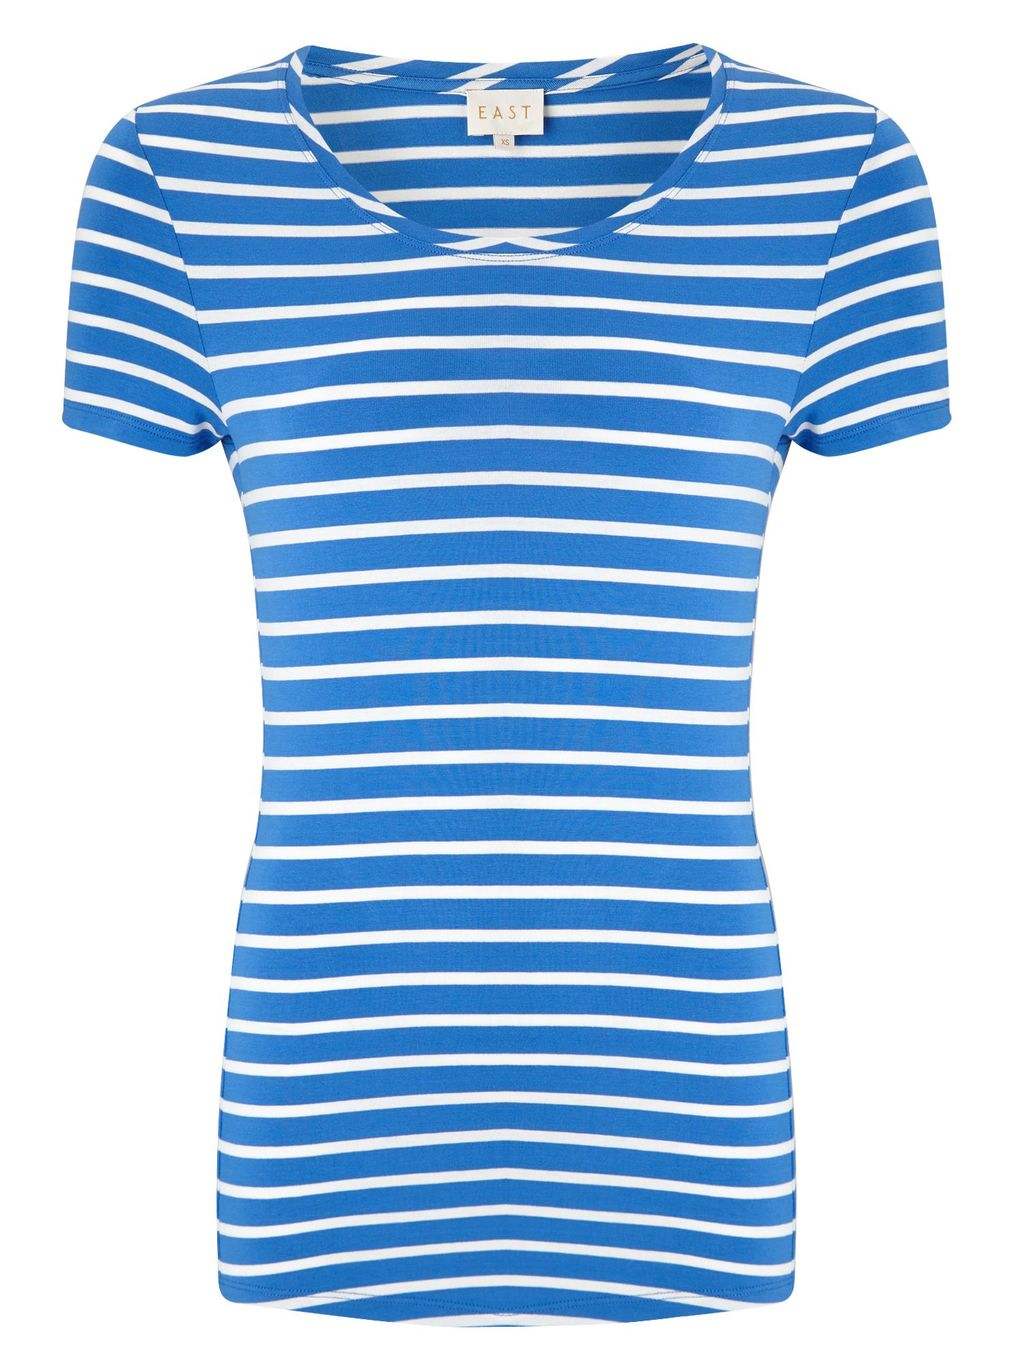 Stripe Basic T Shirt, Blue - neckline: round neck; pattern: horizontal stripes; style: t-shirt; hip detail: draws attention to hips; secondary colour: white; predominant colour: royal blue; occasions: casual; length: standard; fibres: viscose/rayon - stretch; fit: body skimming; sleeve length: short sleeve; sleeve style: standard; pattern type: fabric; pattern size: standard; texture group: jersey - stretchy/drapey; multicoloured: multicoloured; season: s/s 2016; wardrobe: highlight